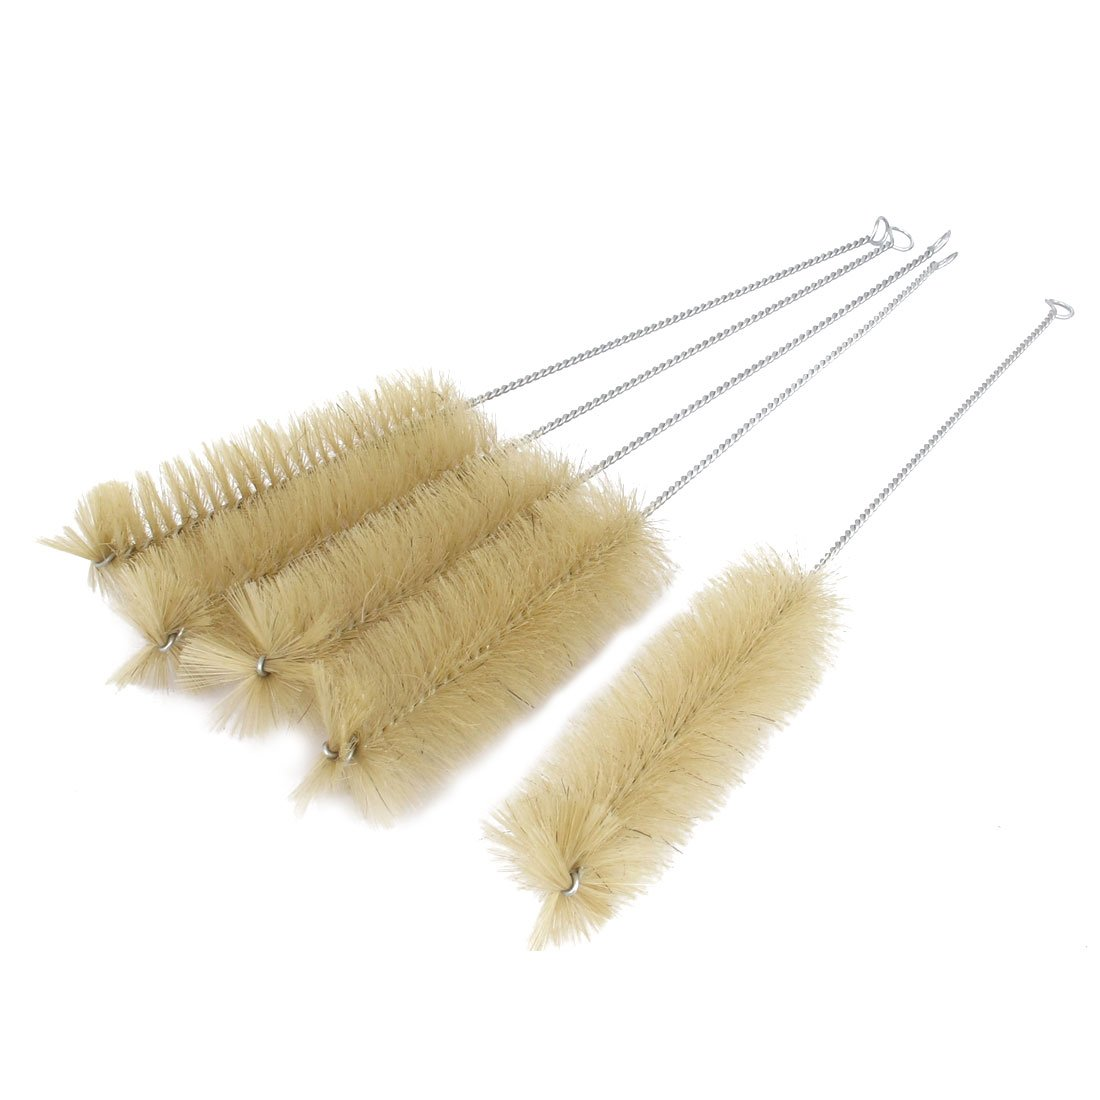 uxcell A15071500ux0843 36cm Long 5cm Dia Bristle Test Tube Bottle Cleaning Brush Cleaner 5pcs (Pack of 5)